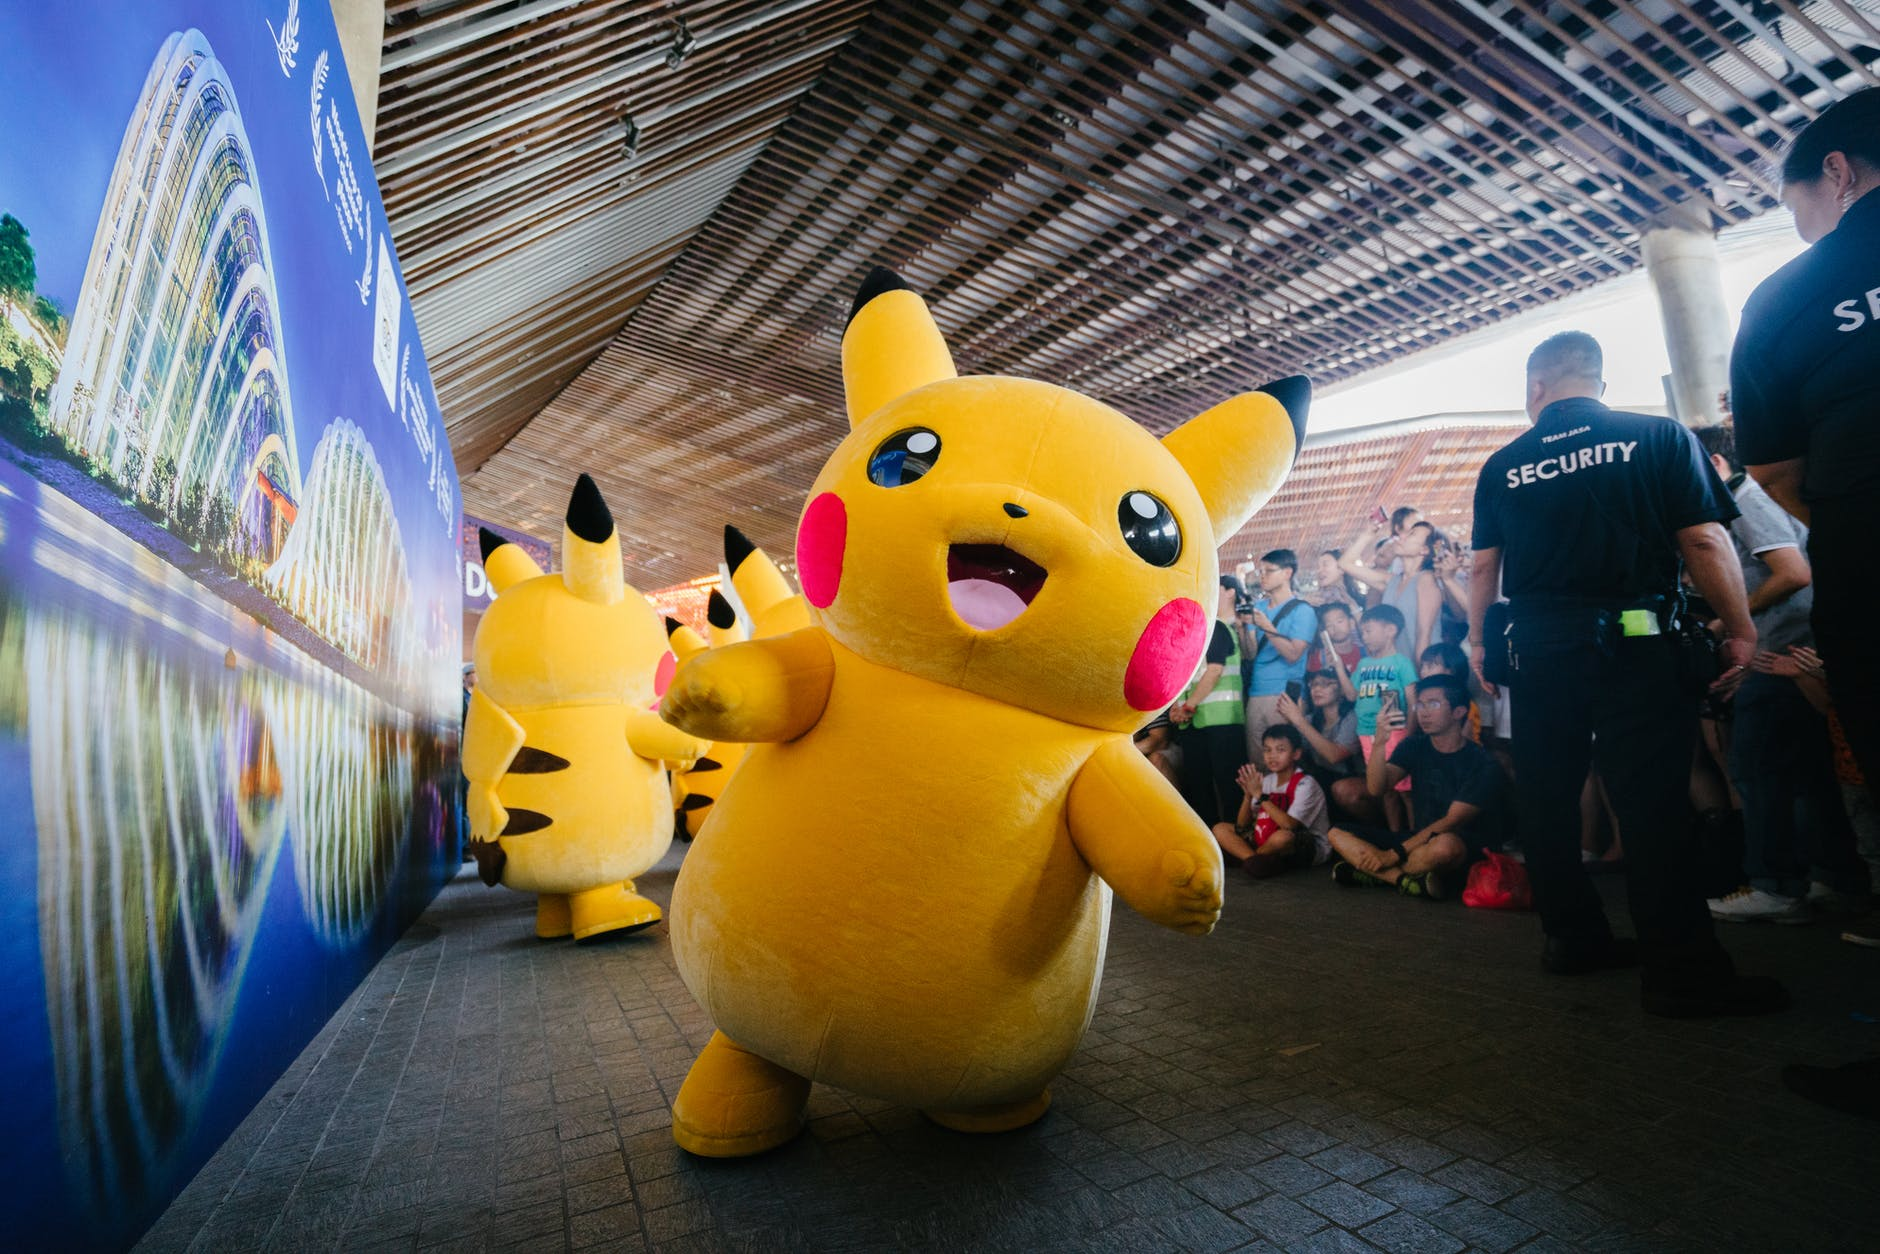 mascot costume of Pikachu